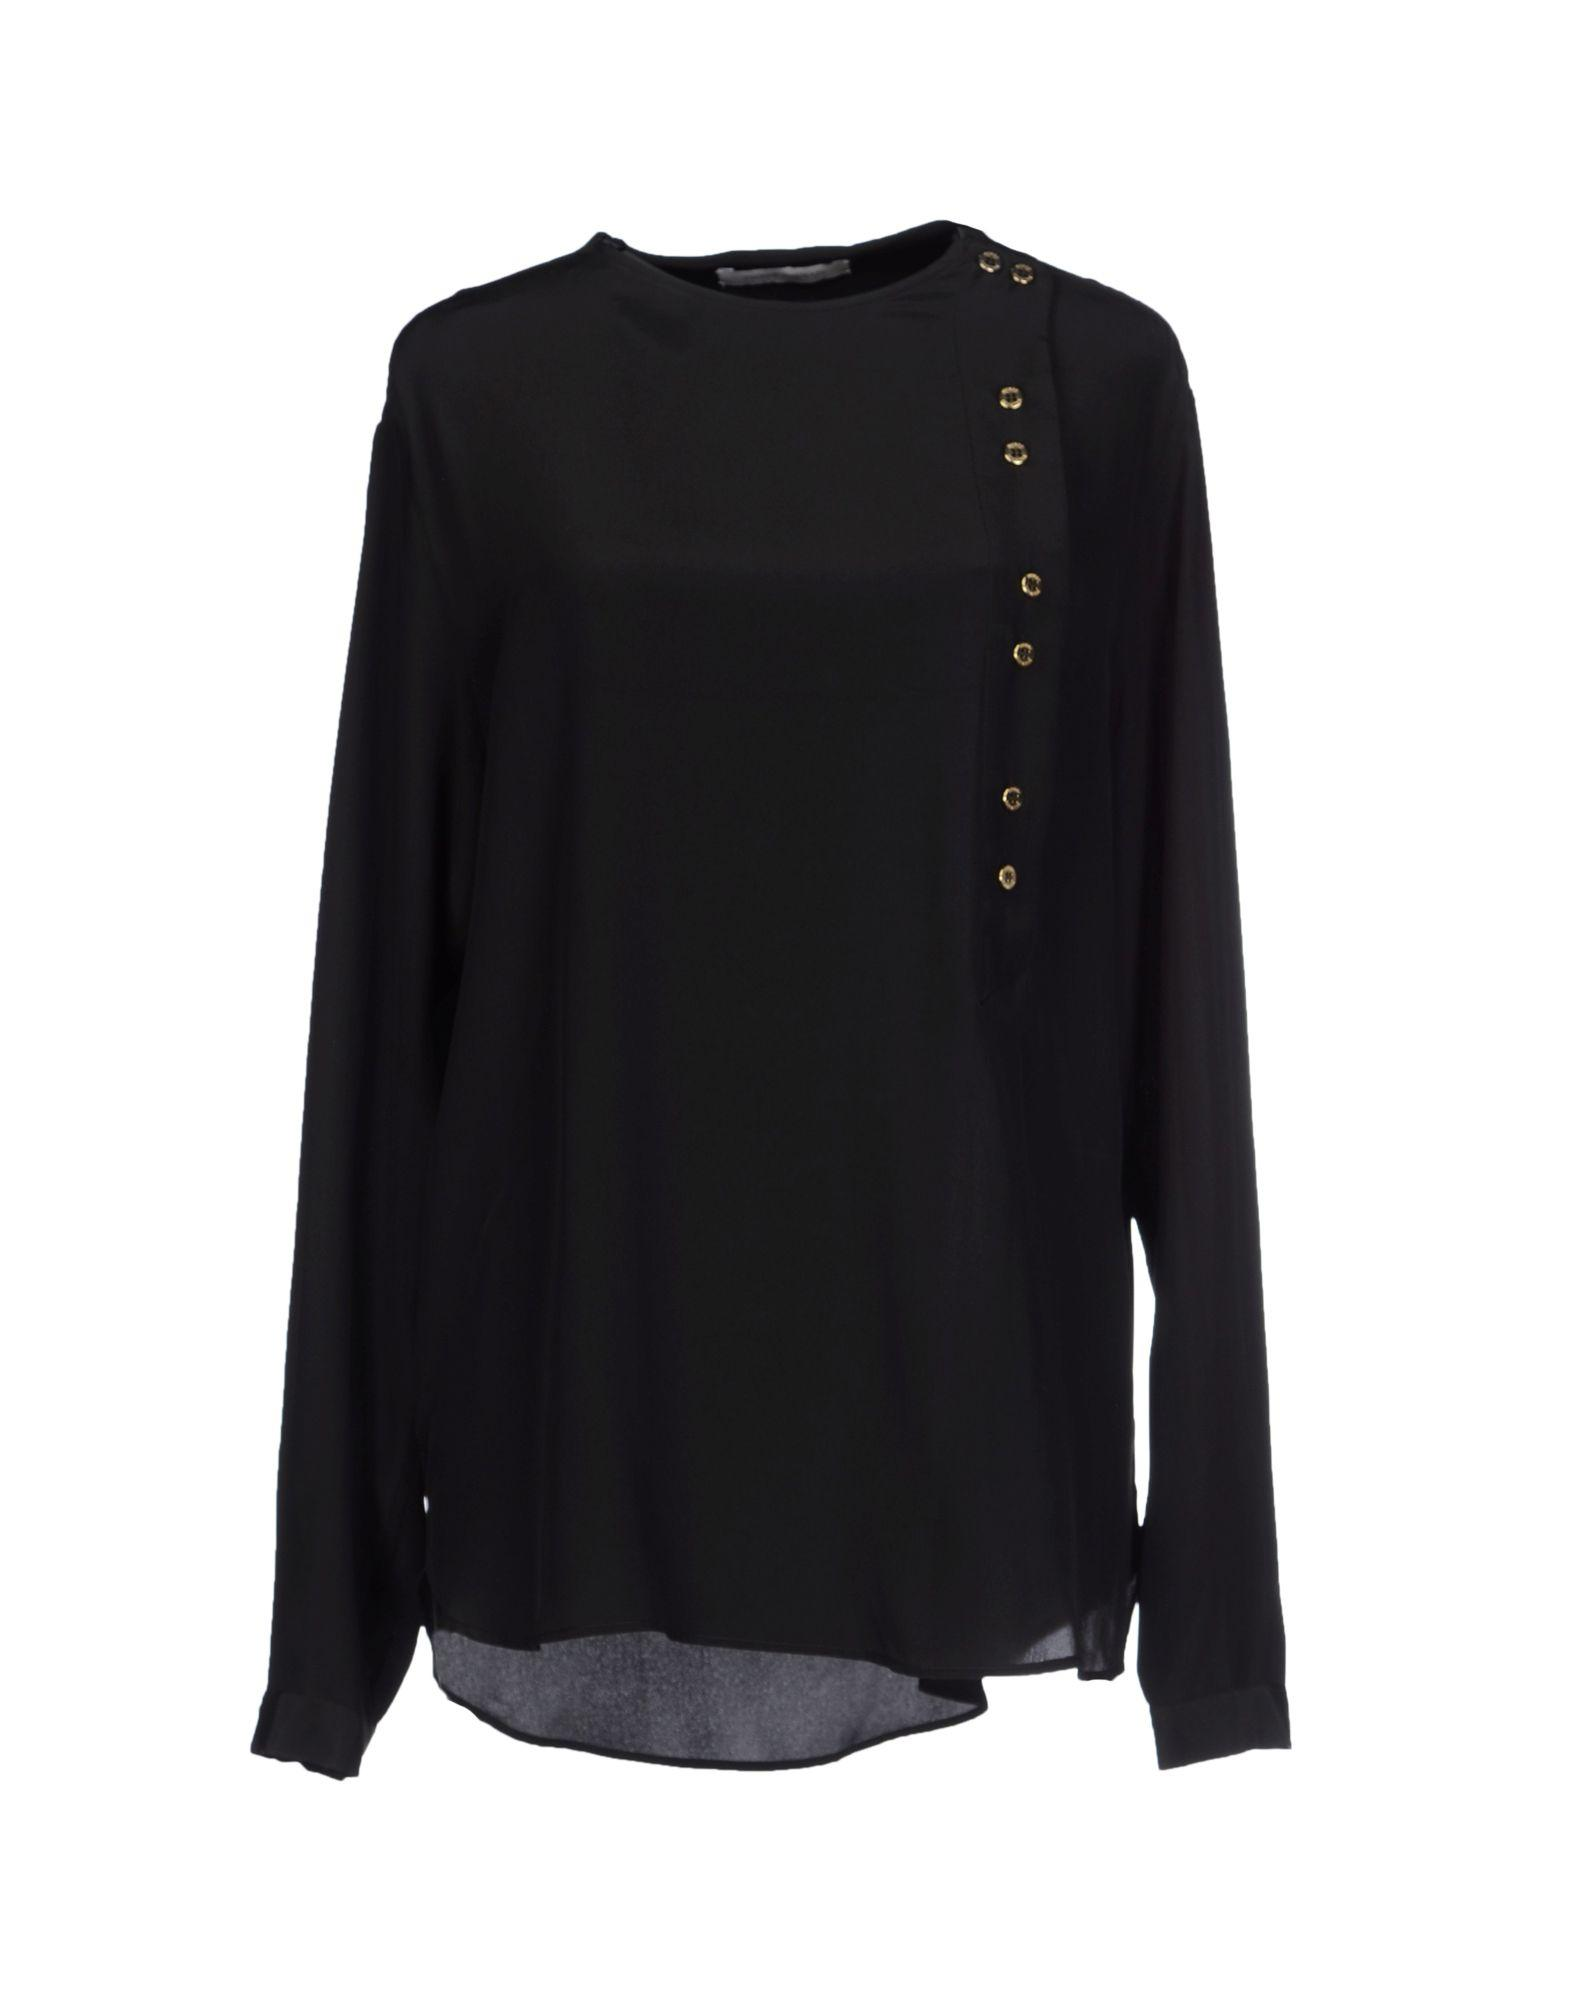 Pierre Balmain In Black